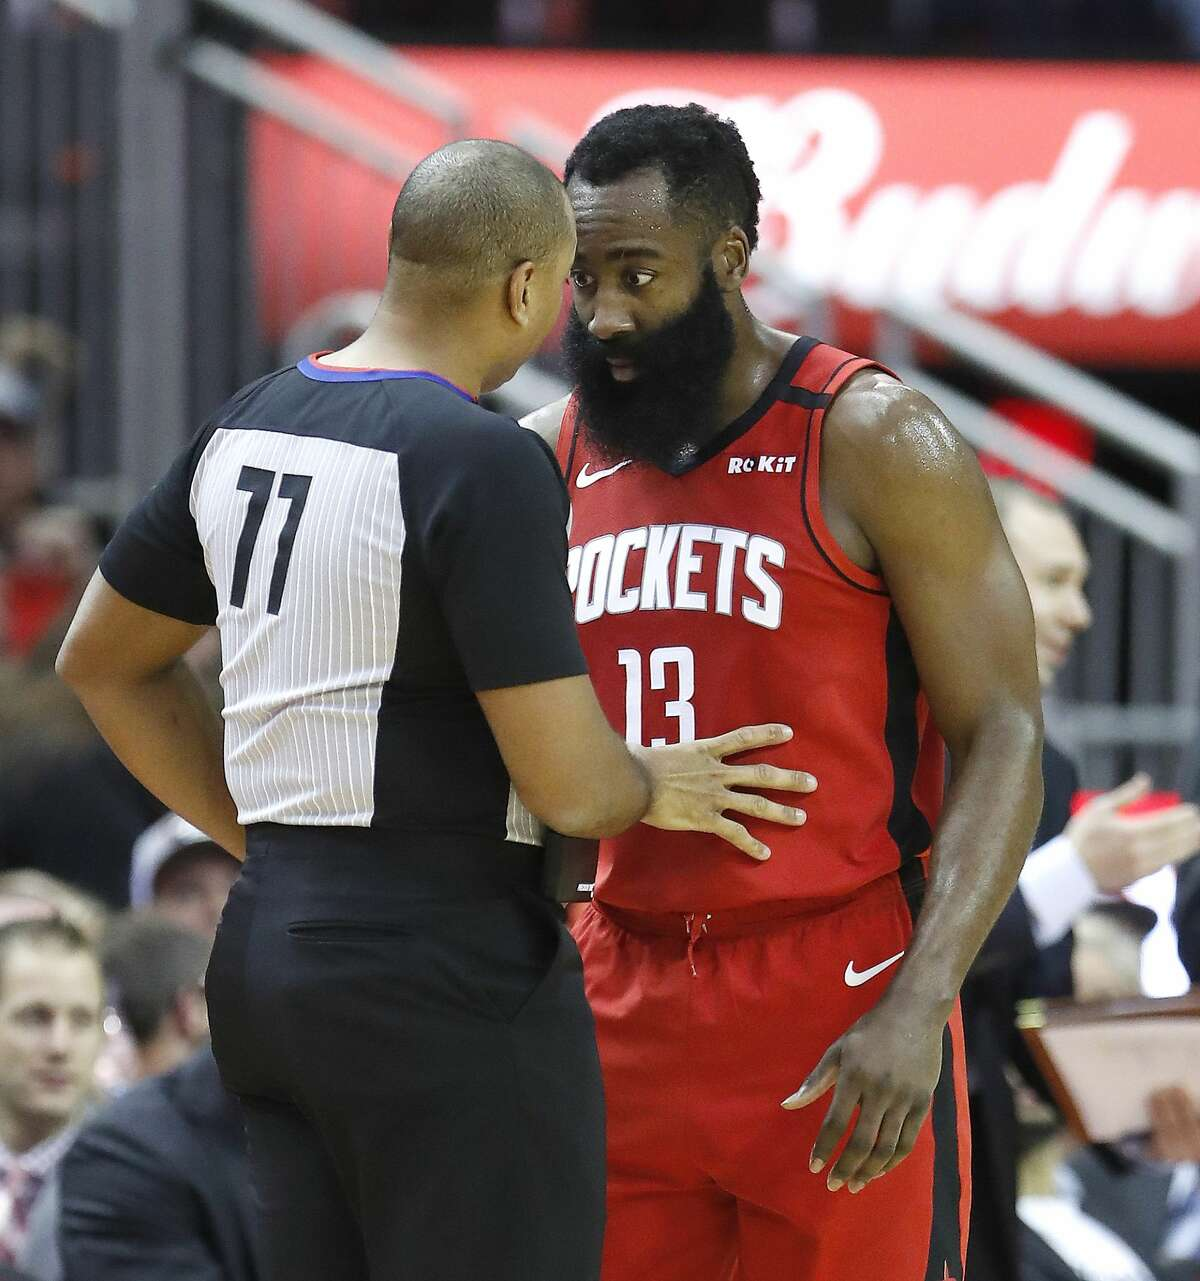 Houston Rockets guard James Harden (13) argues a call with referee Karl Lane (77) during the first half of an NBA basketball game at Toyota Center in Houston, Wednesday, Jan. 22, 2020.